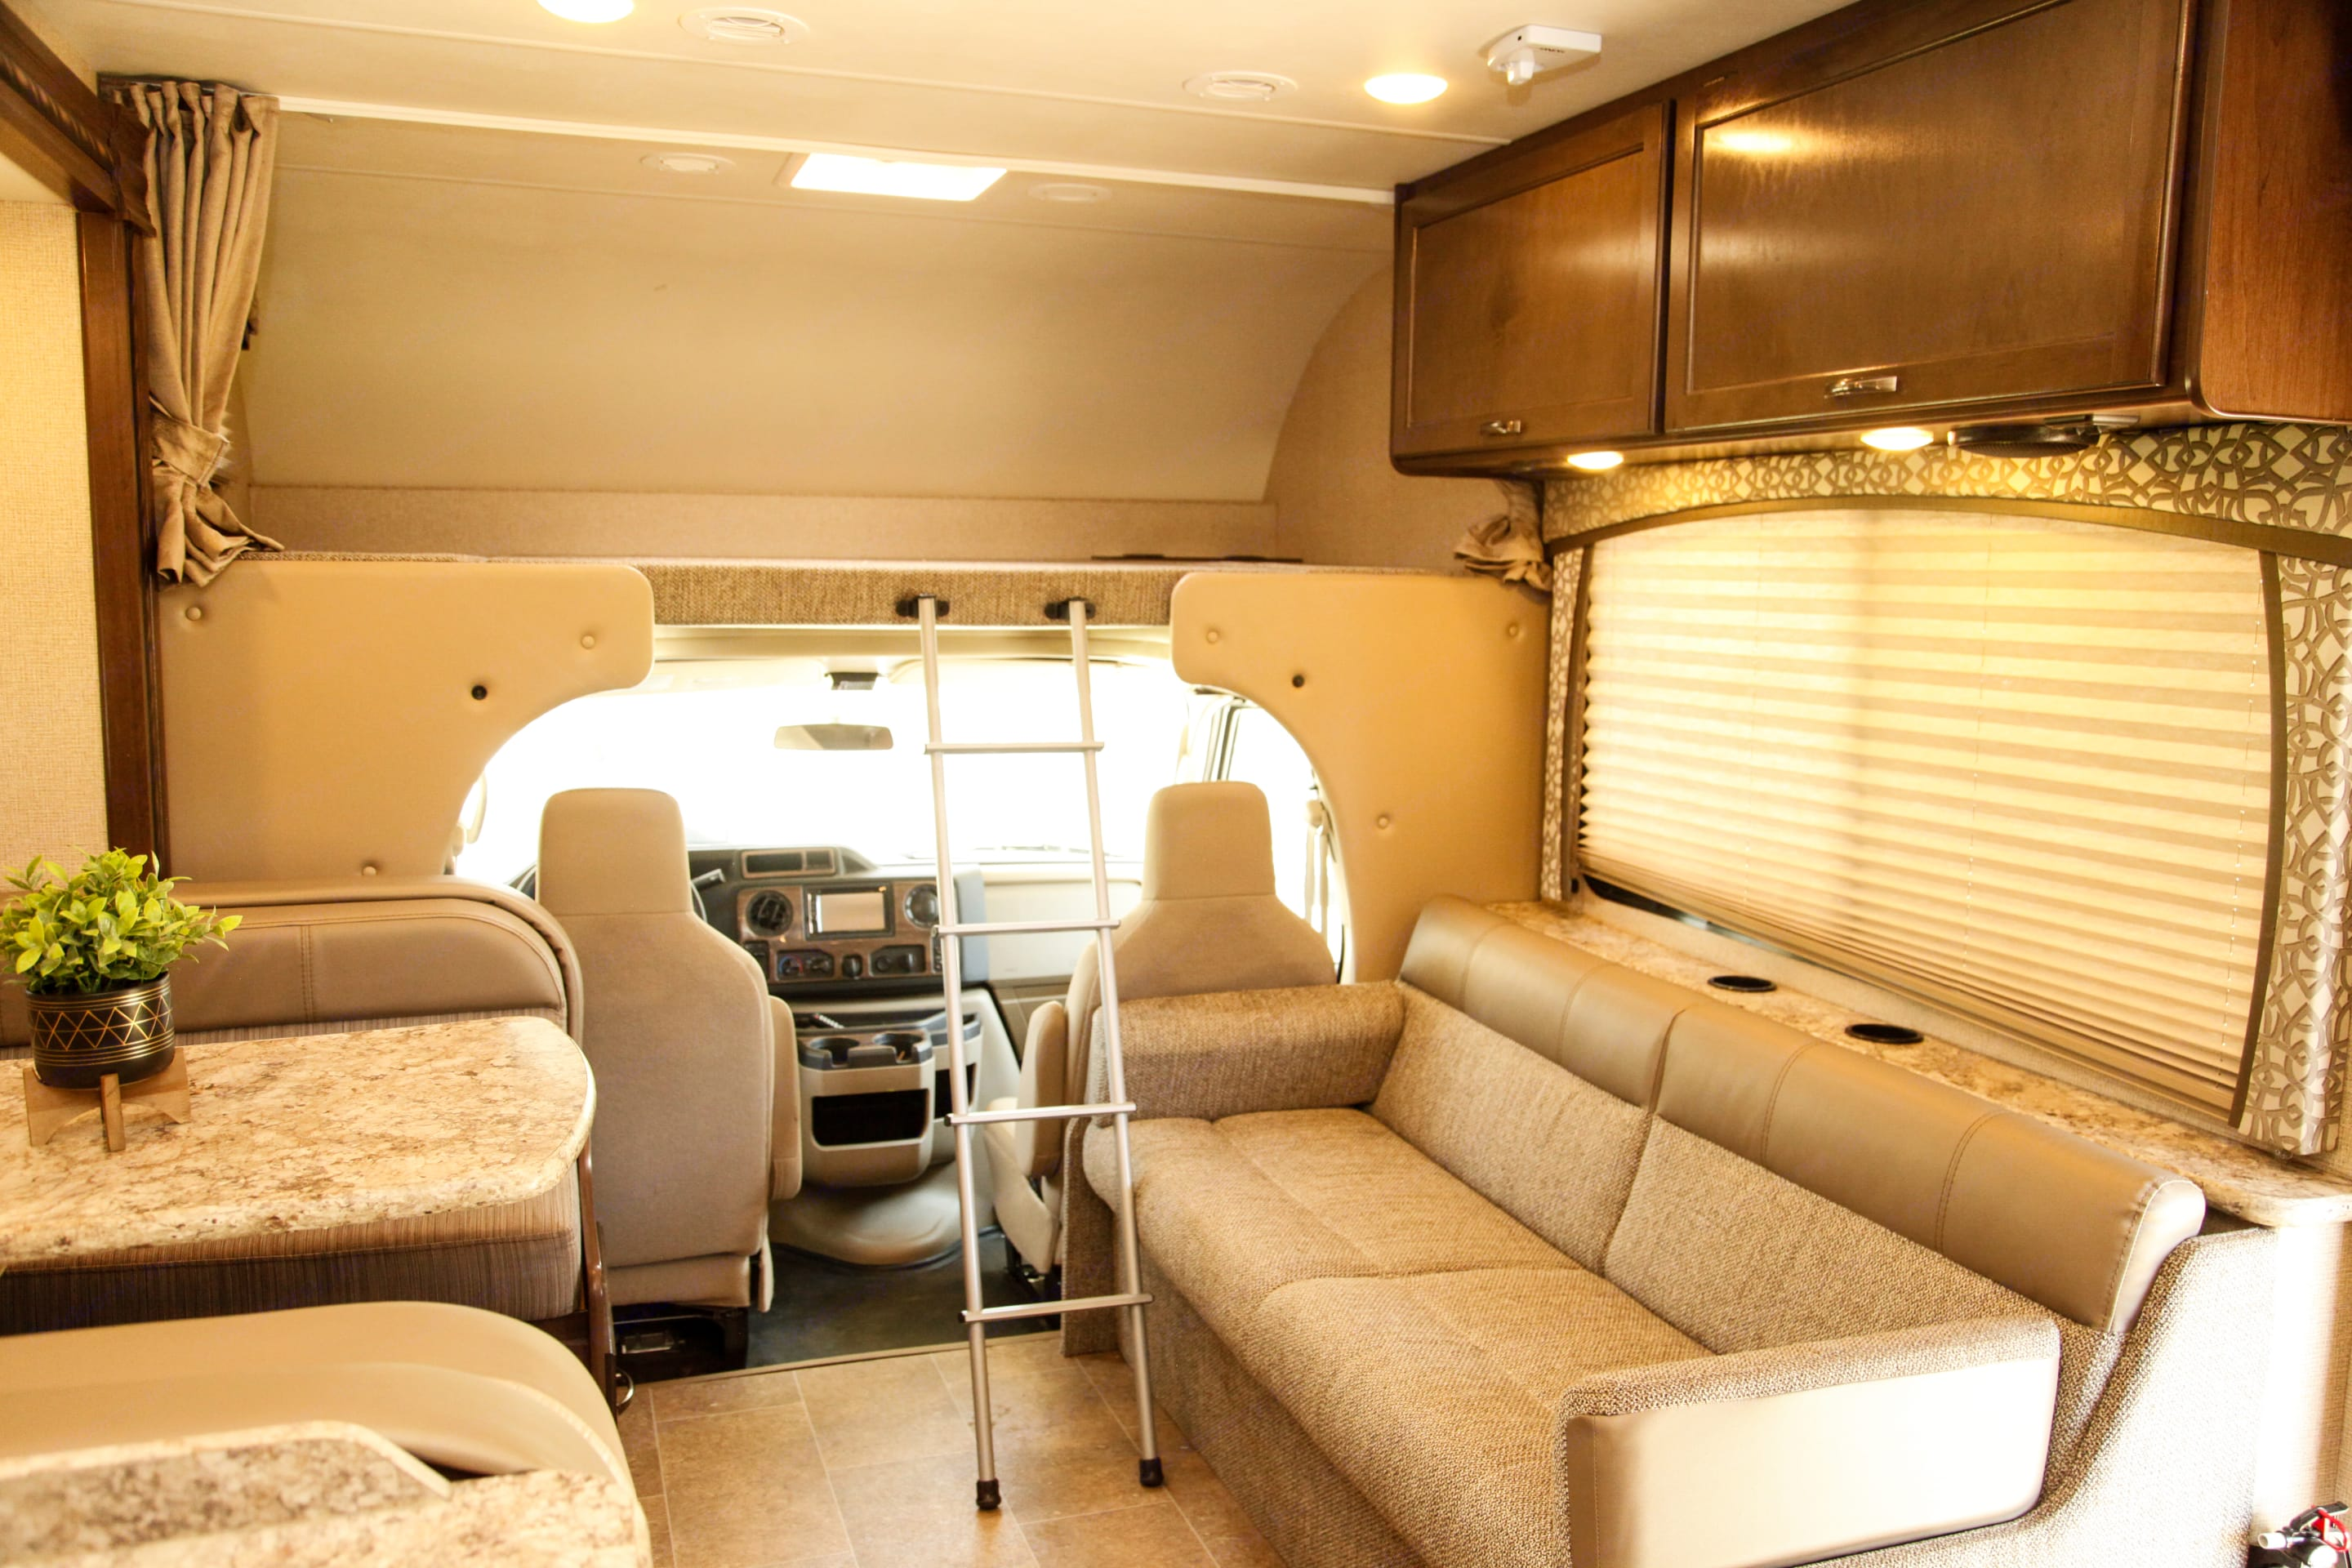 Couch turns in to a bed  Kitchen table turns into a bed Overhead bunk great for 2 adults or teens. Thor Motor Coach Chateau 2017